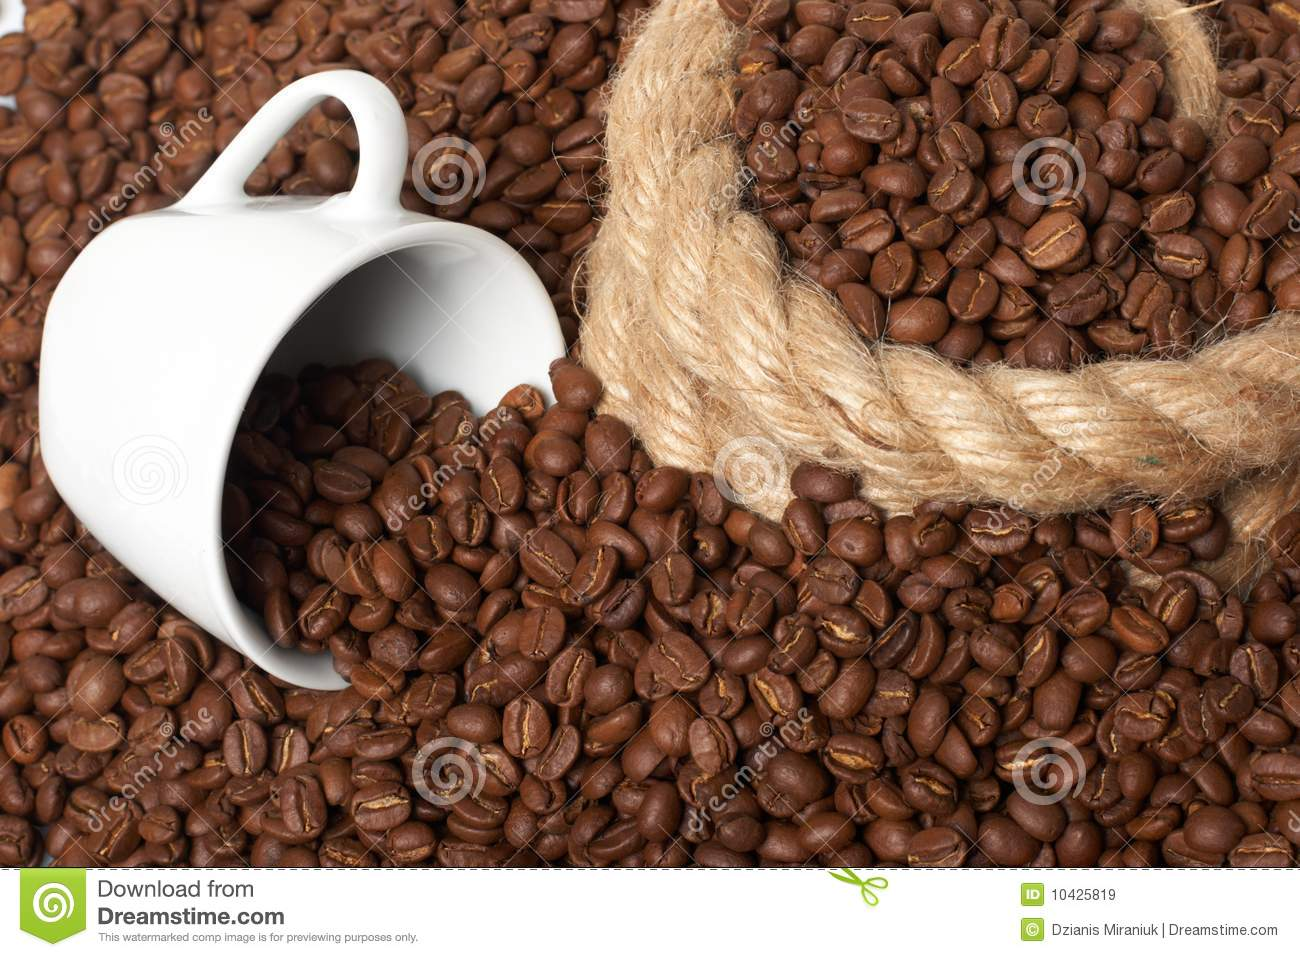 cup in a grain of coffee royalty free stock images image 10425819. Black Bedroom Furniture Sets. Home Design Ideas